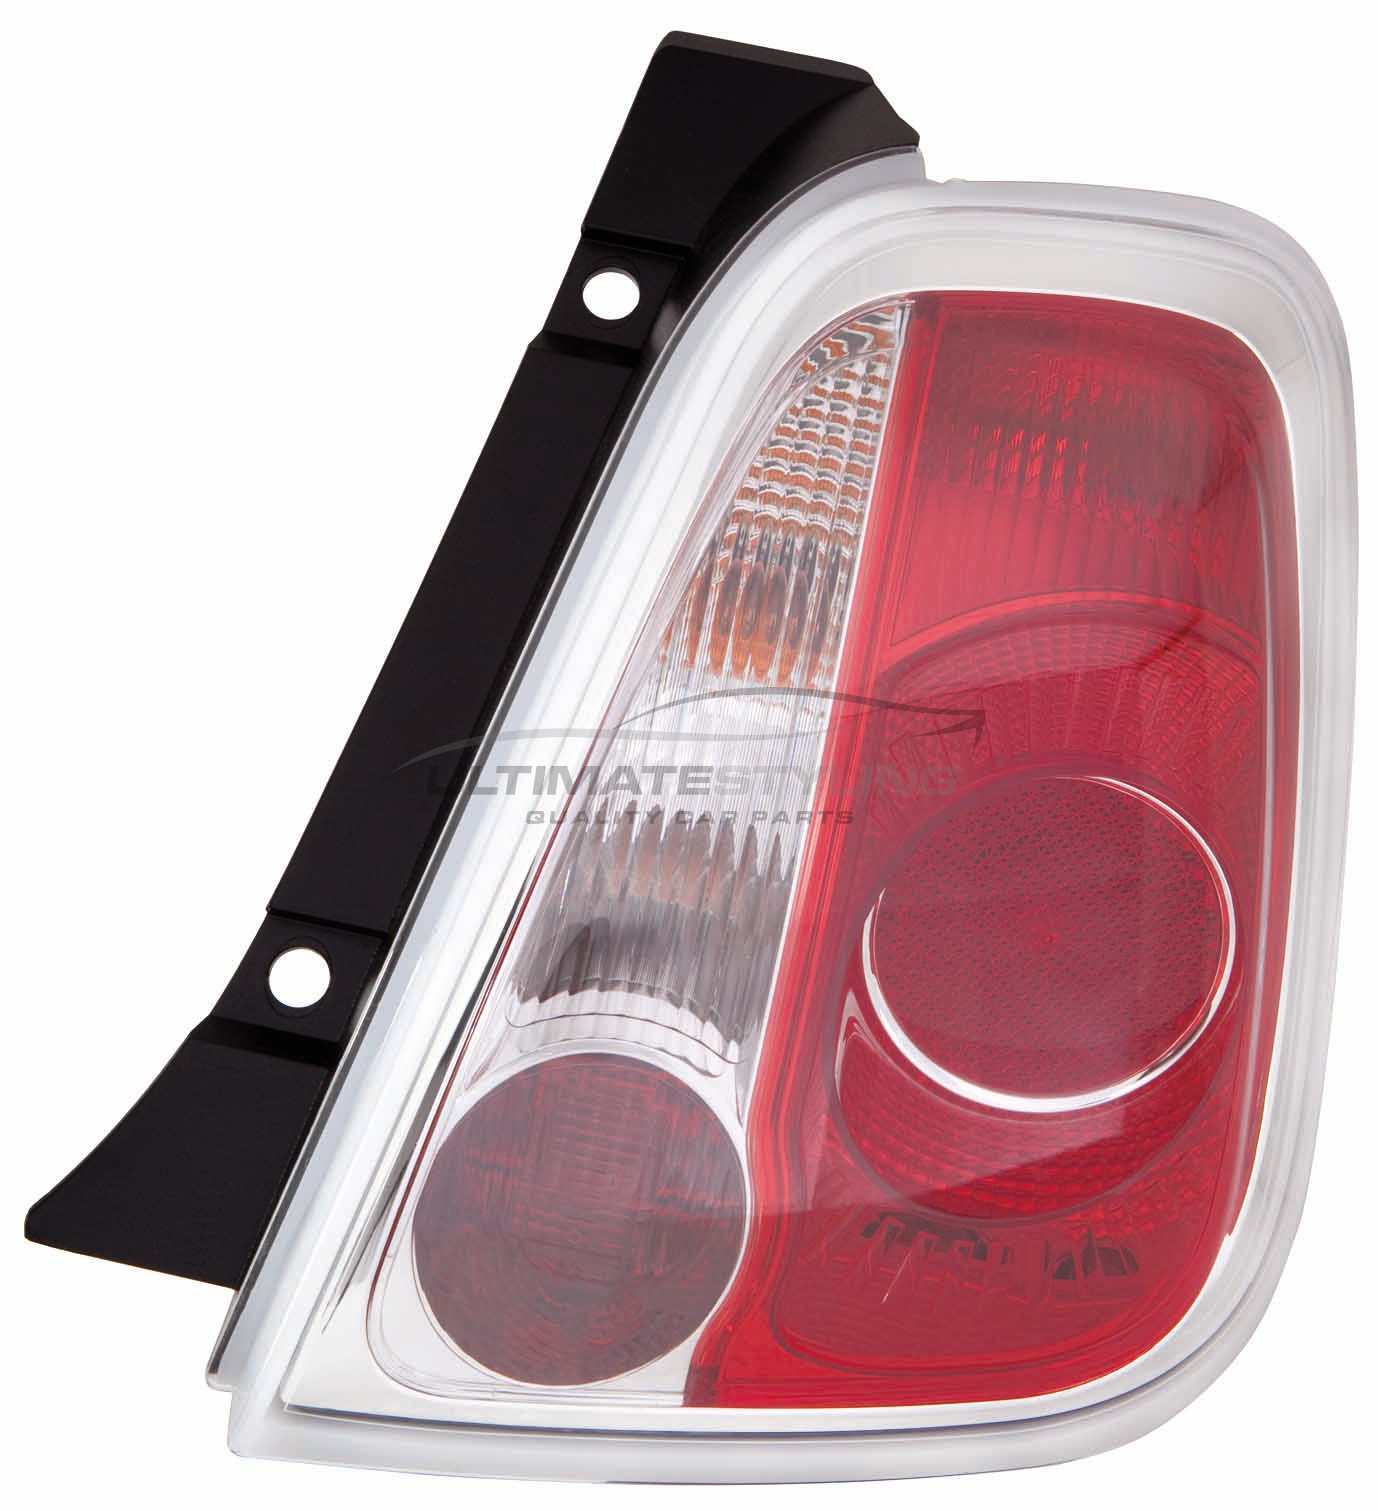 RH PY21W R10W P21W x 2 Side Of Product Drivers Side Reference OE//OEM Number s s 51885545 Ultimate Styling Aftermarket Non-LED Rear Tail Light Lamp Without Bulb Holder Bulb Type